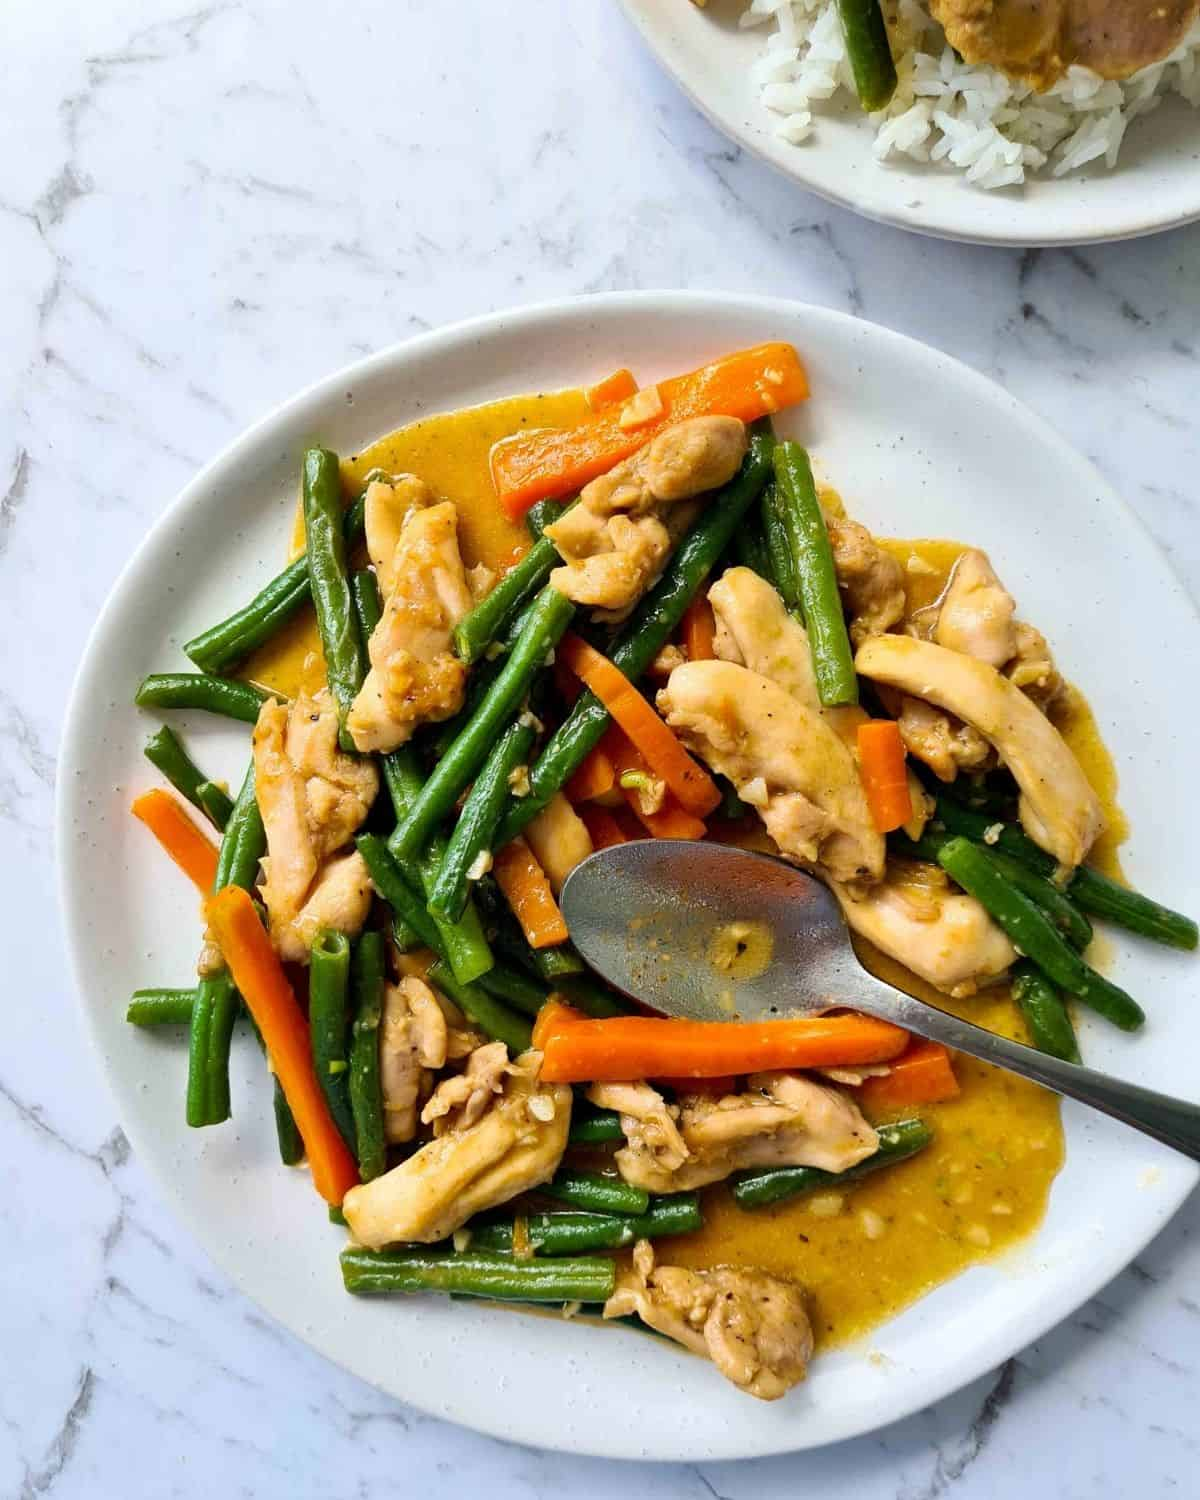 Plateful of chicken and vegetable stir fry being served